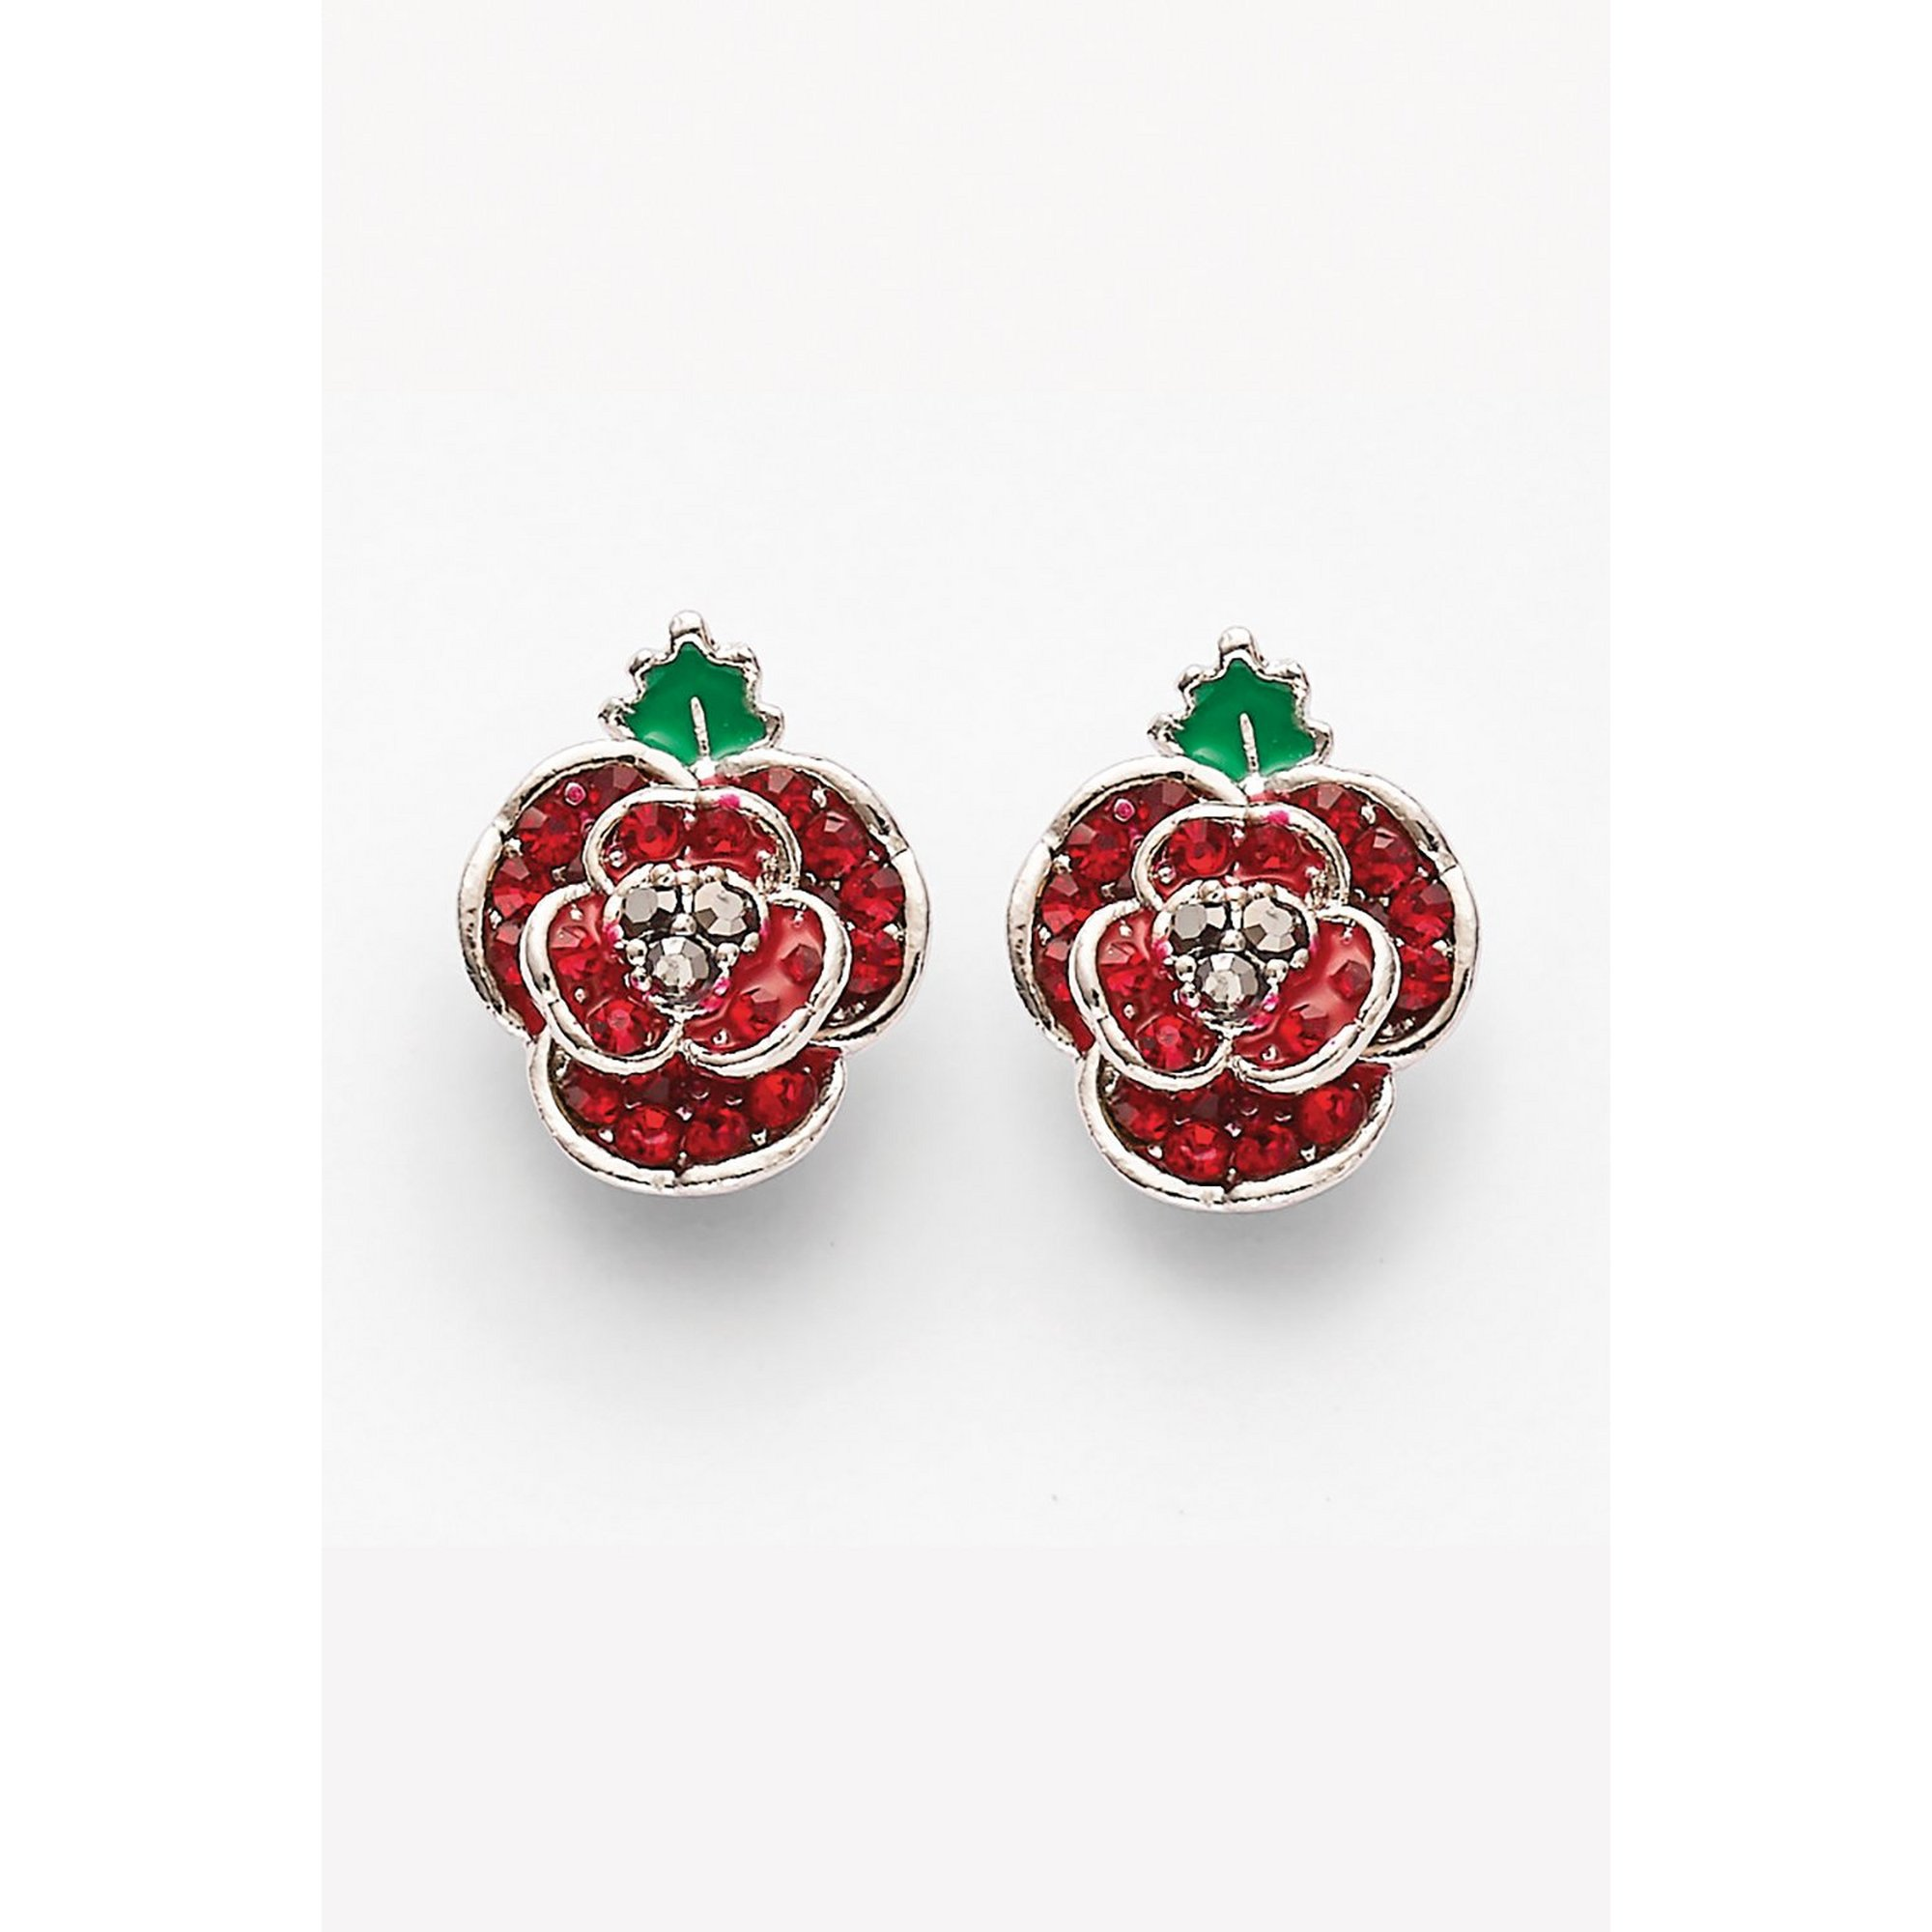 Image of Espree Crystal Poppy Earrings with Enamel Leaf